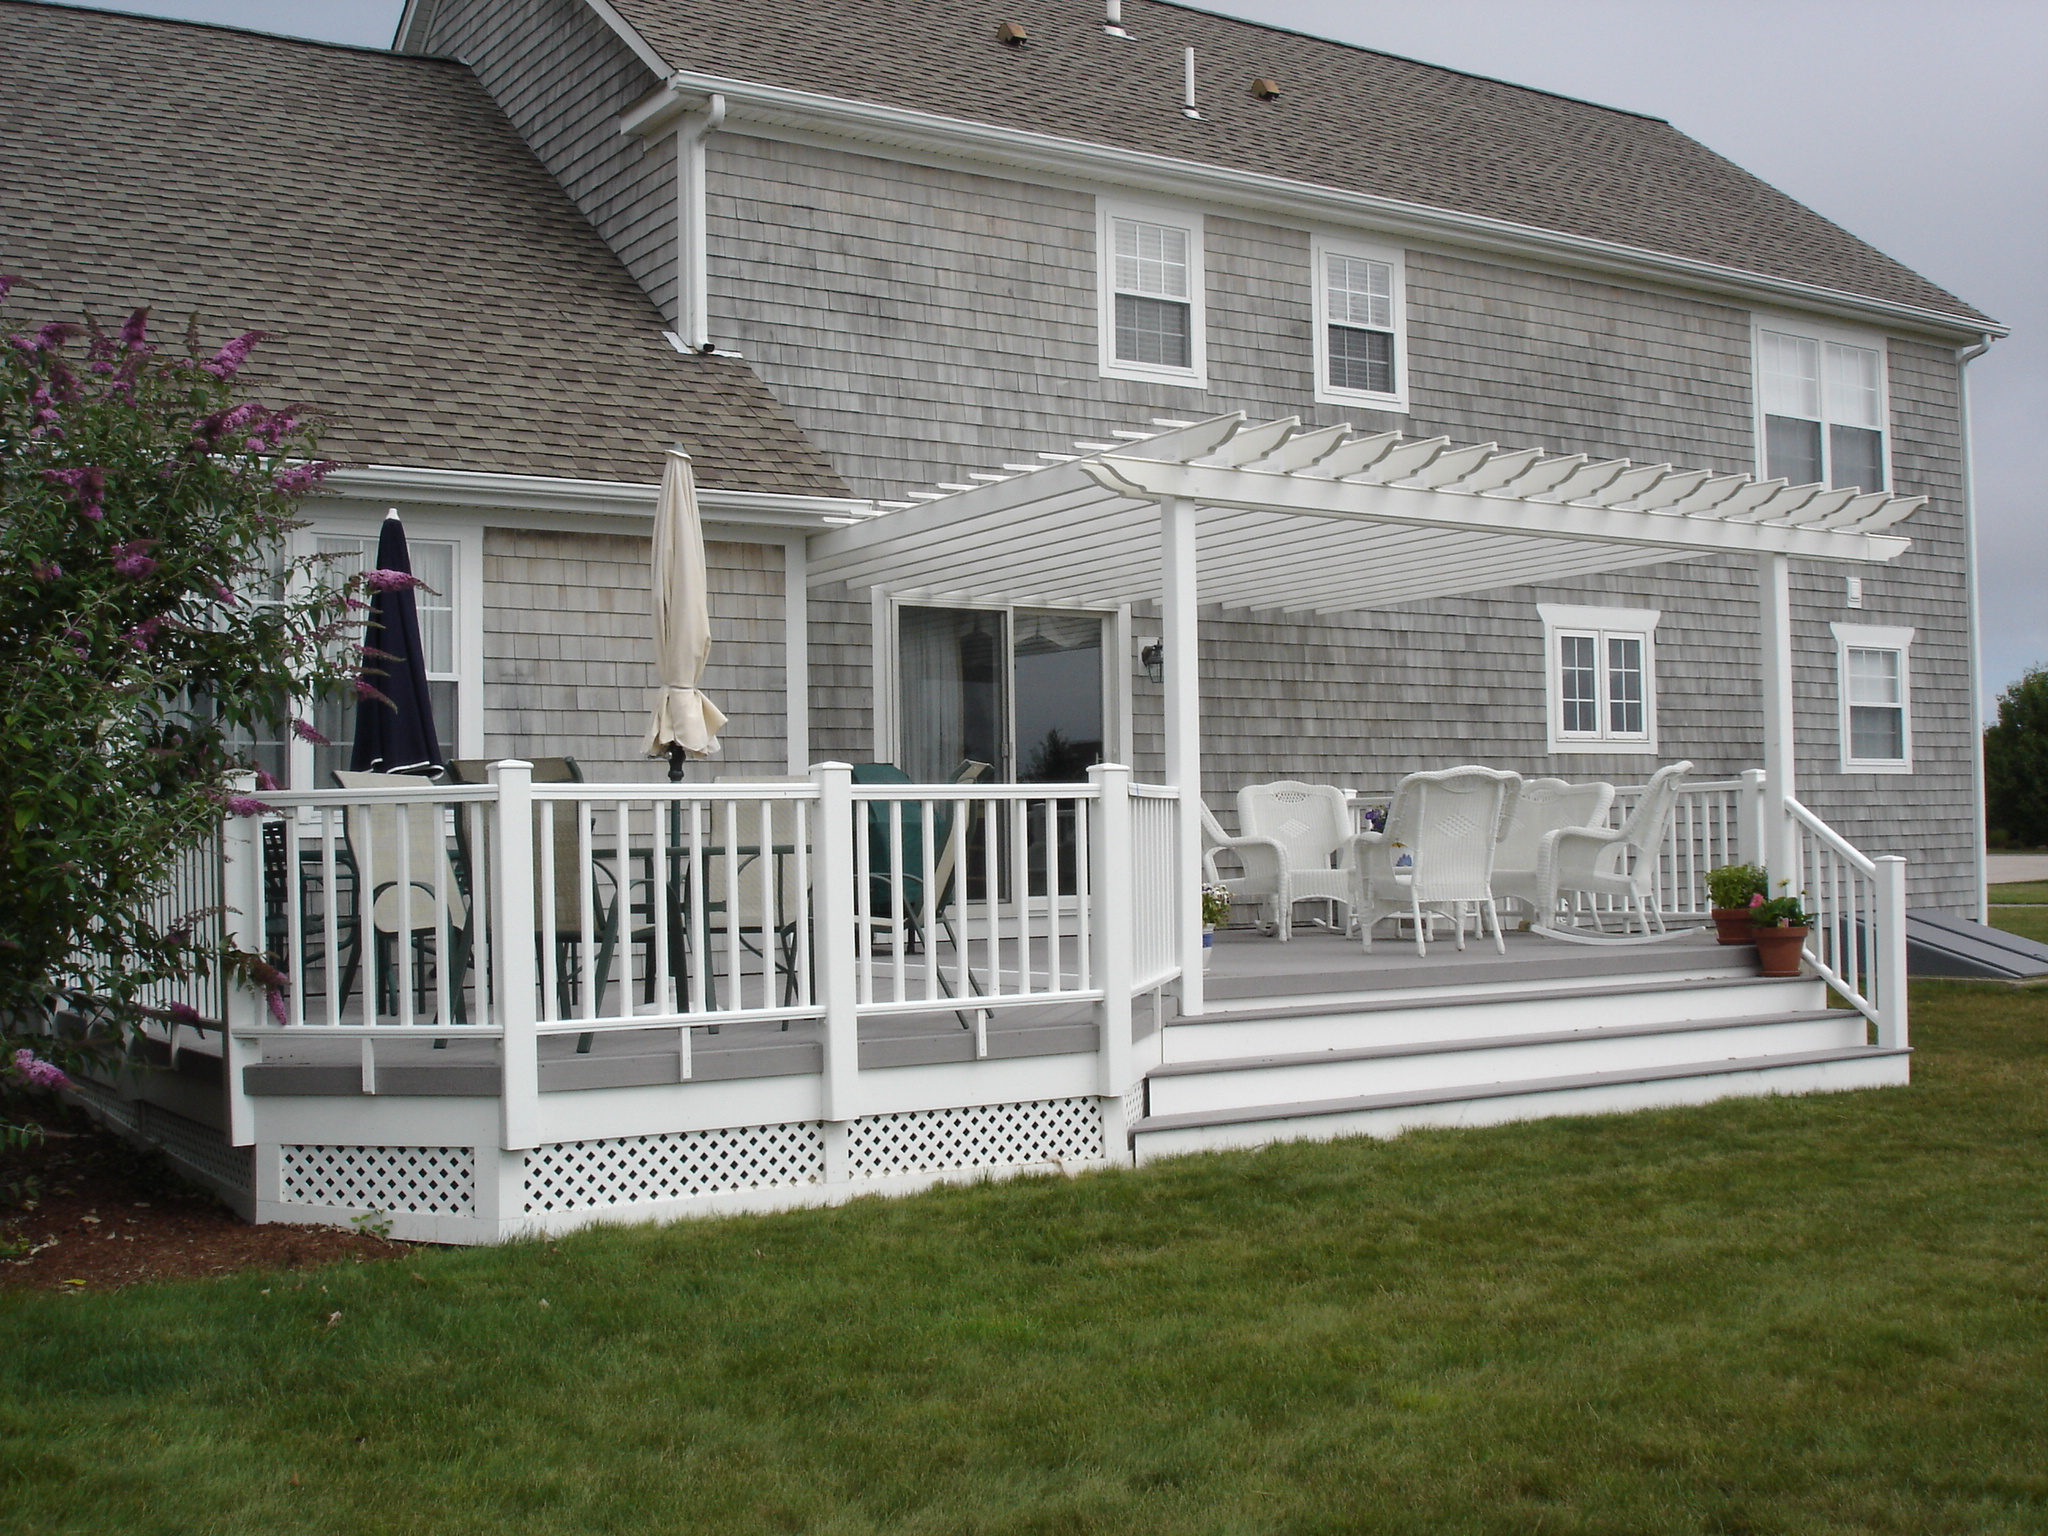 St louis mo pergola deck designs by archadeck st for Patio porch designs